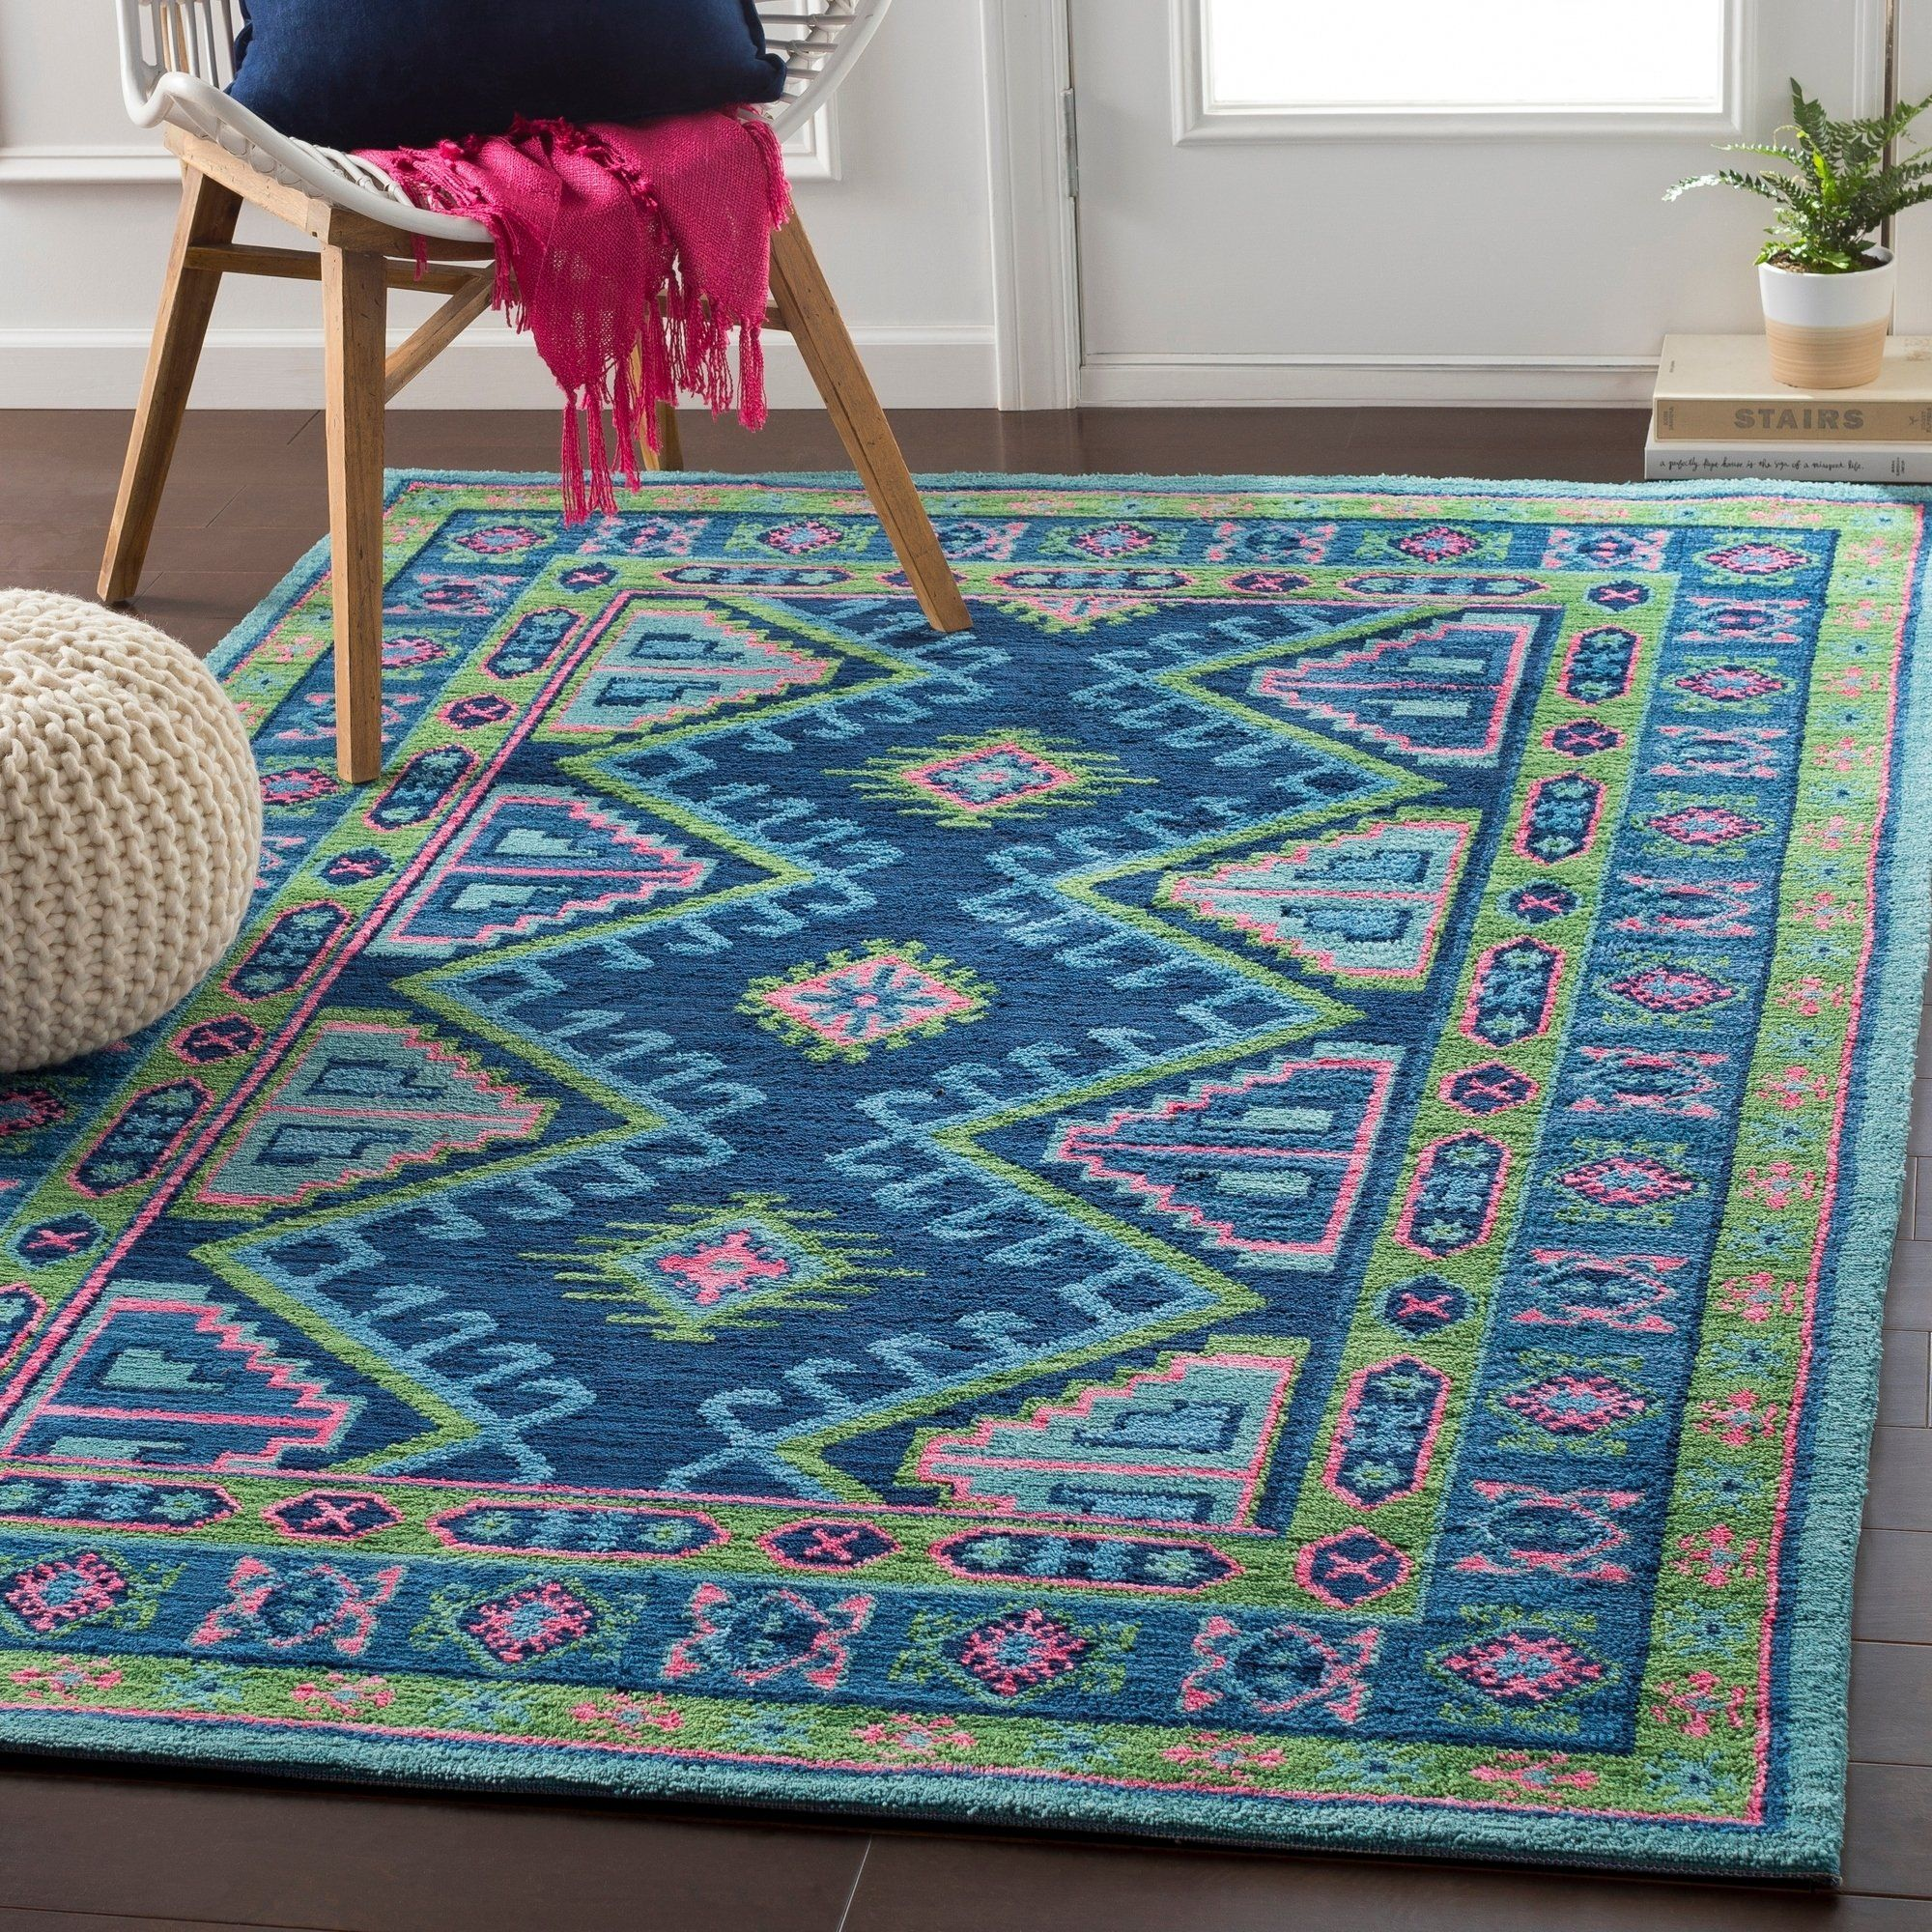 Online Shopping Bedding Furniture Electronics Jewelry Clothing More Area Rugs Rugs Cool Rugs